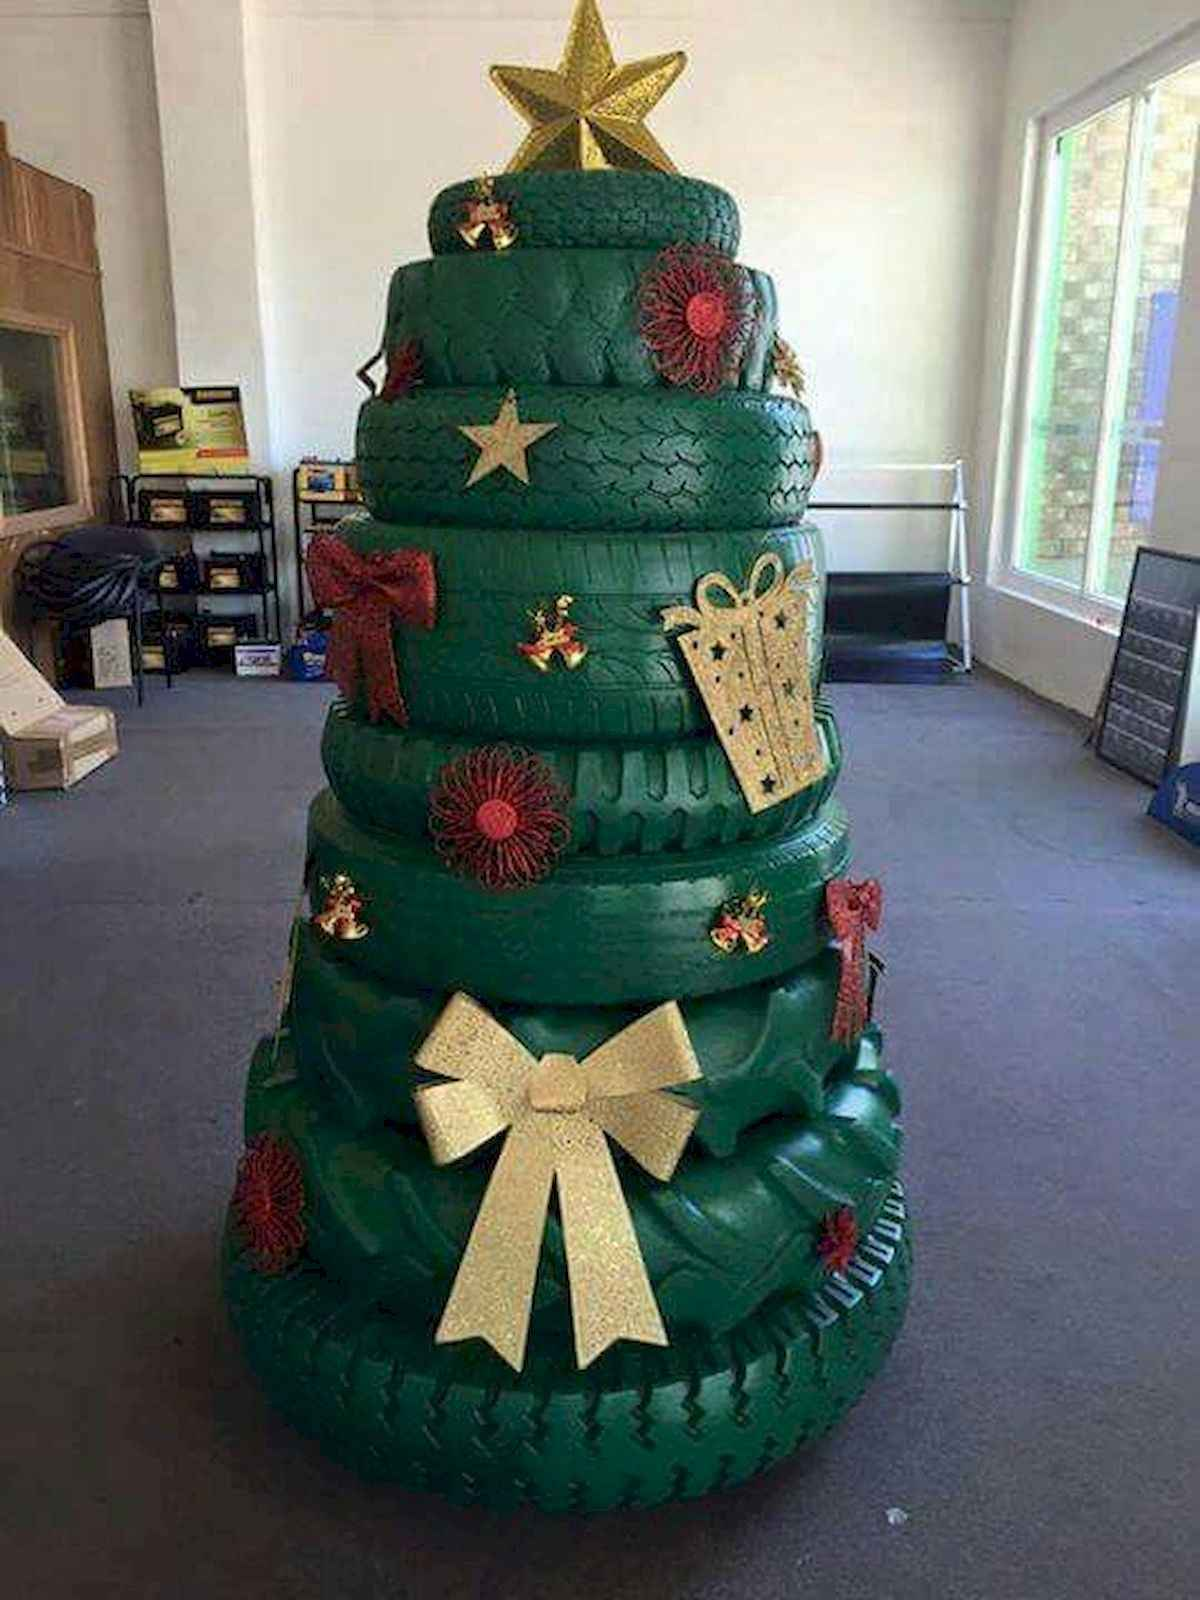 60 awesome christmas tree decorations ideas (47)